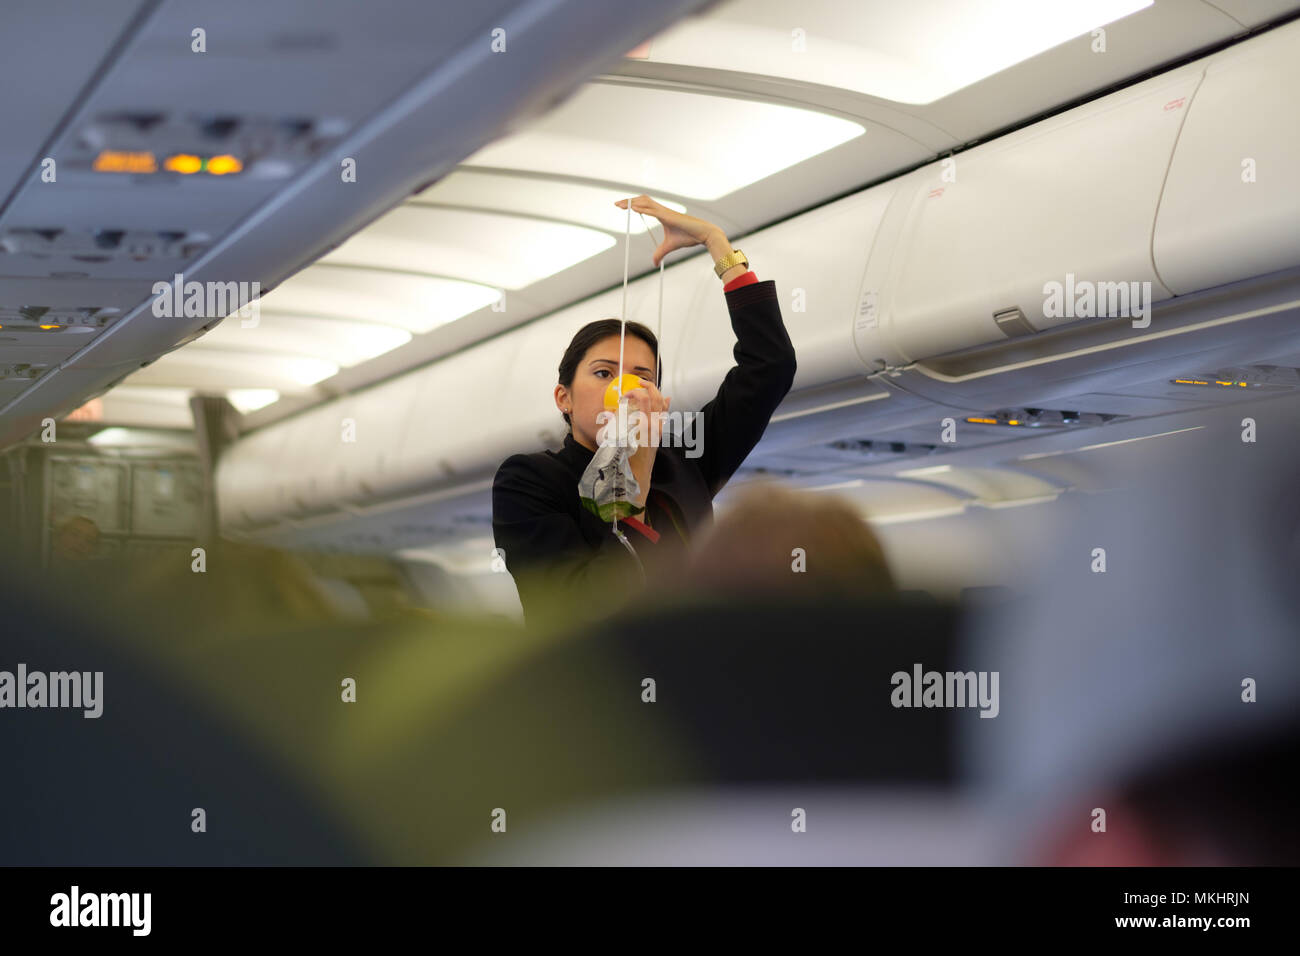 Flight hostess in uniform showing how to use the airplane's emergency oxygen mask during safety procedure demonstration - Stock Image